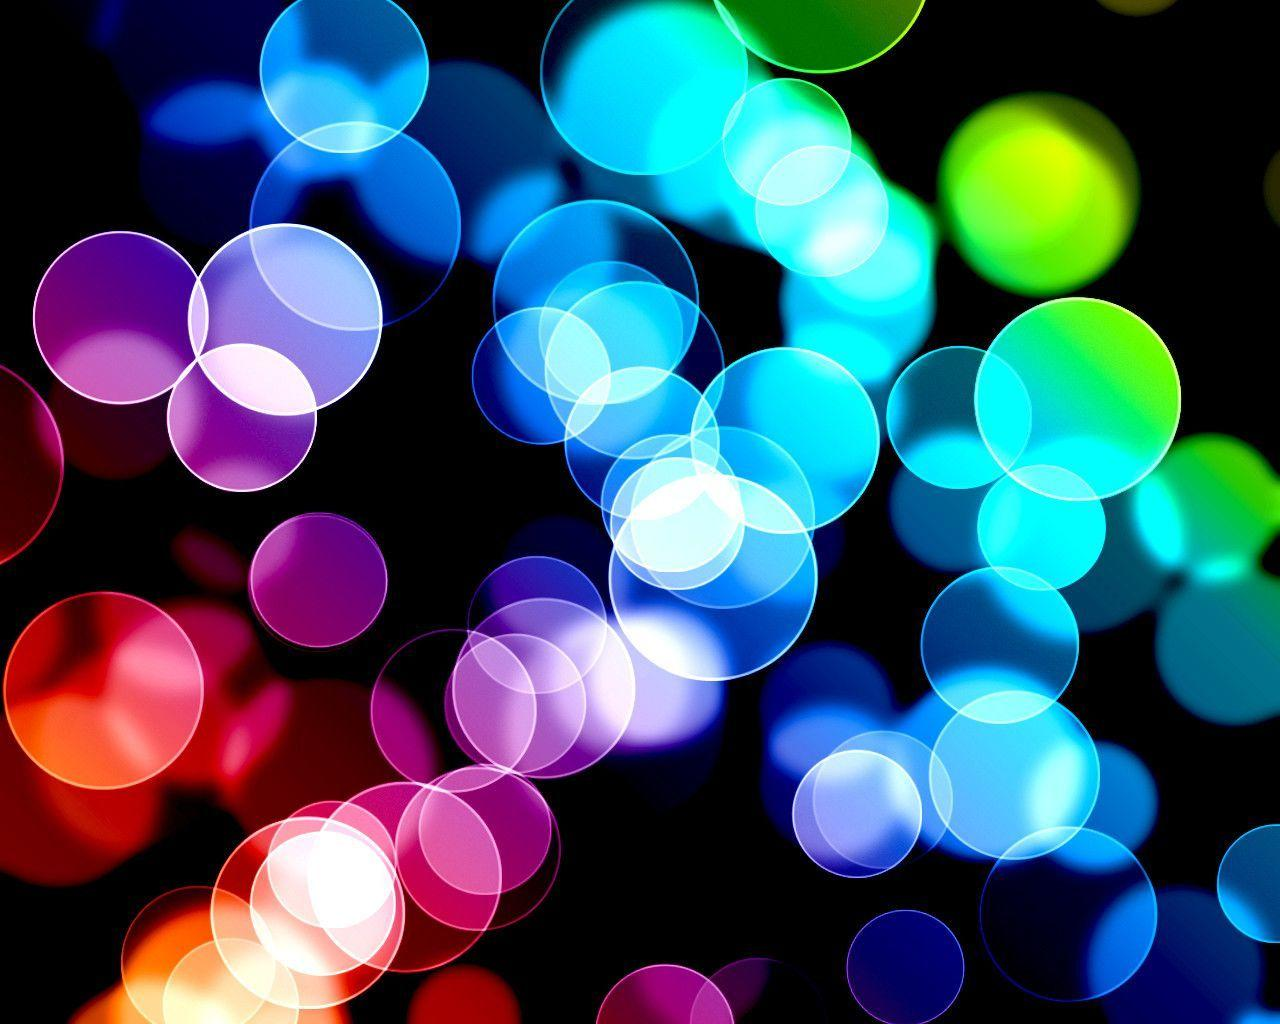 cool rainbow backgrounds wallpapers - photo #45